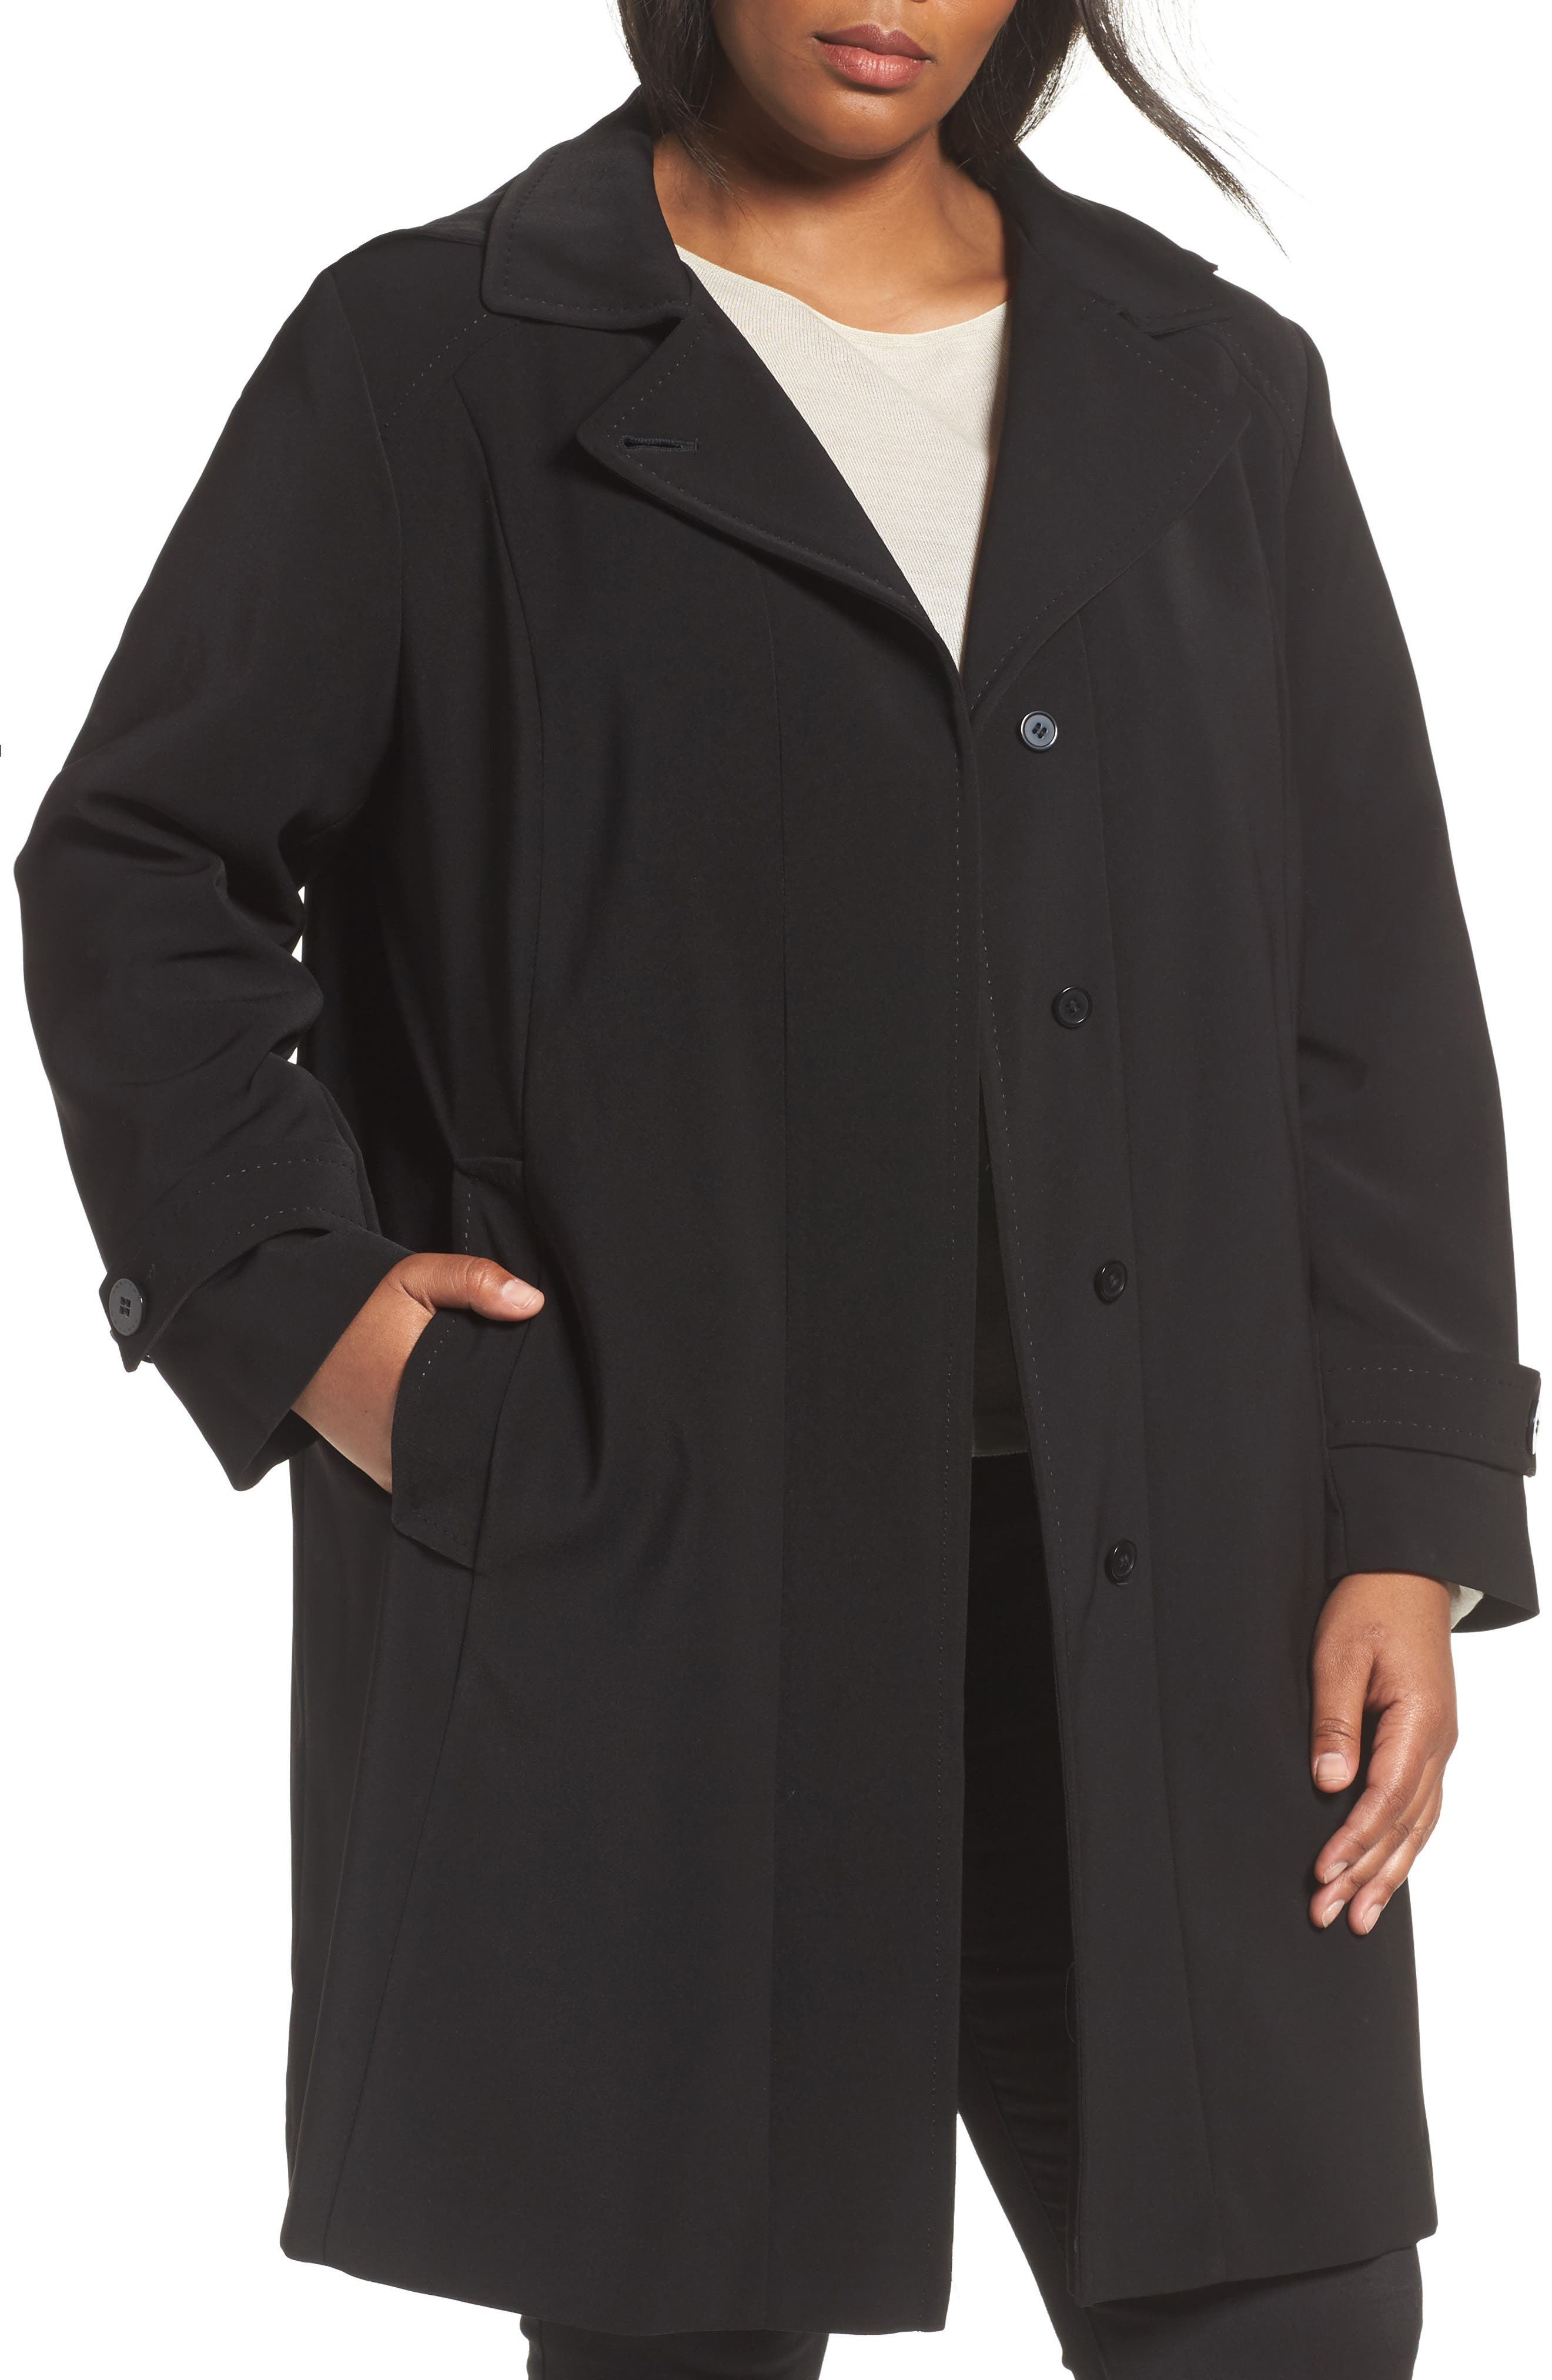 Alternate Image 1 Selected - Gallery A-Line Raincoat with Detachable Hood & Liner (Plus Size)